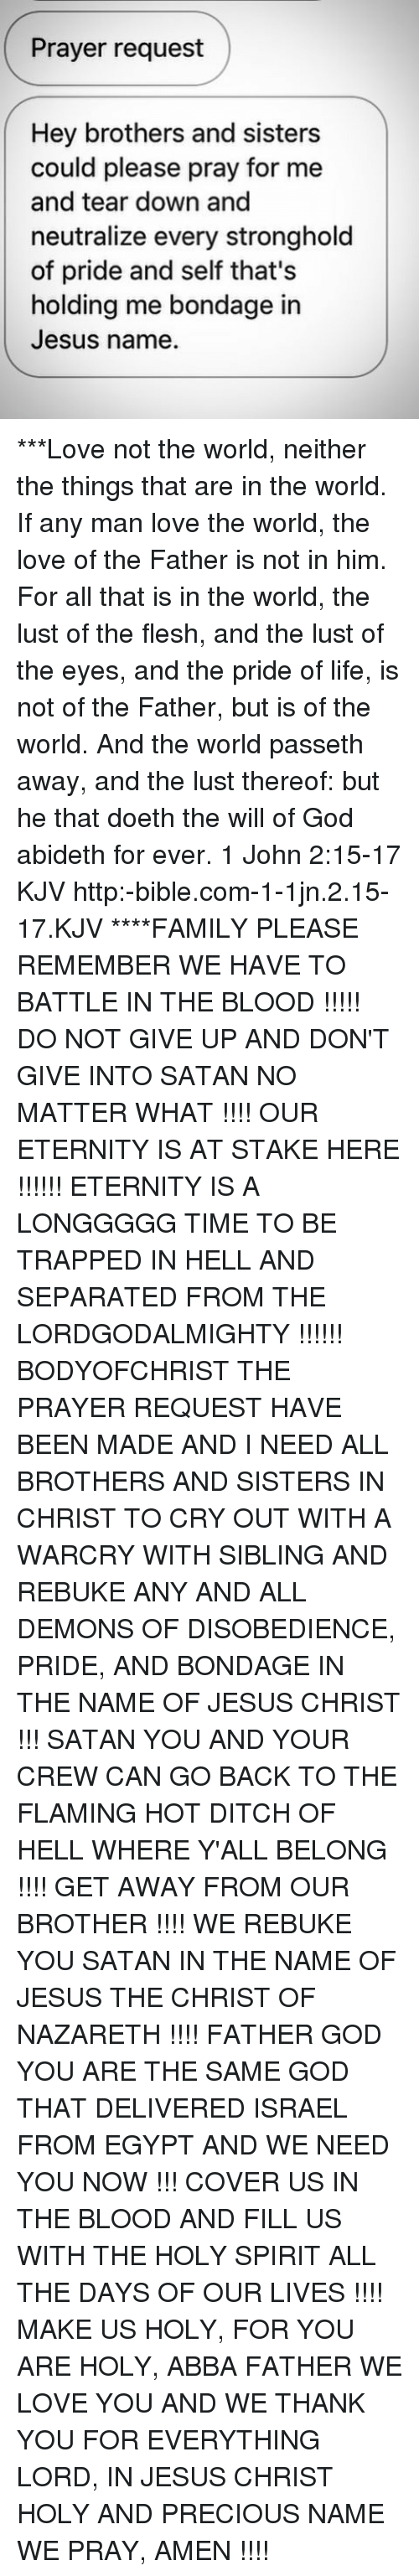 Prayer Request Hey Brothers and Sisters Could Please Pray